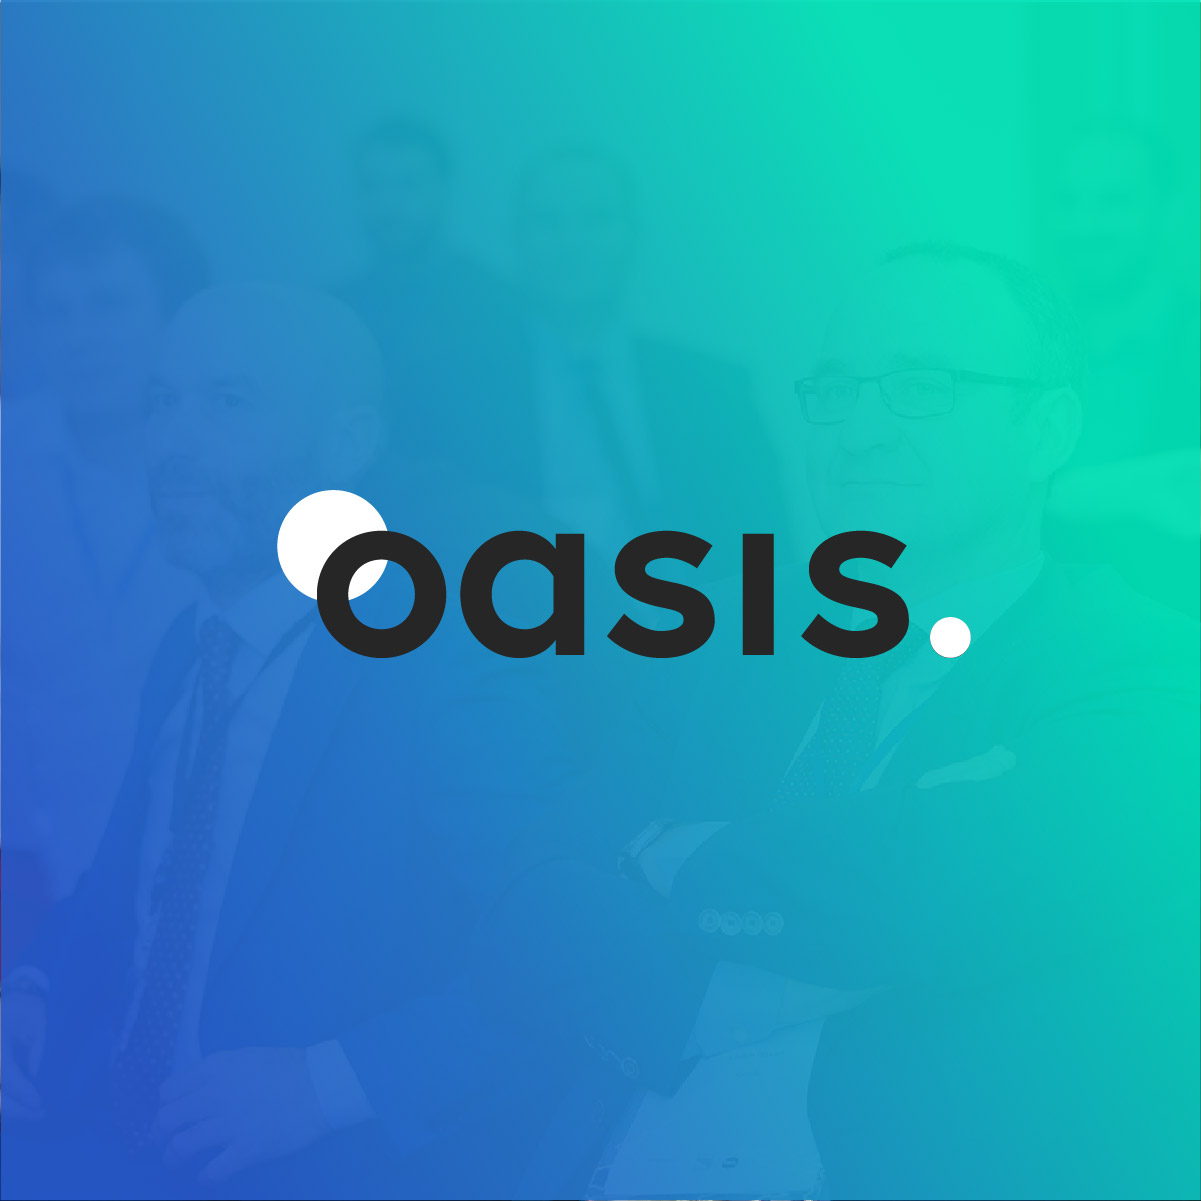 EXTENDED DEADLINE until July 13: Open call for regional development agencies to become third party participant in the OaSIS project